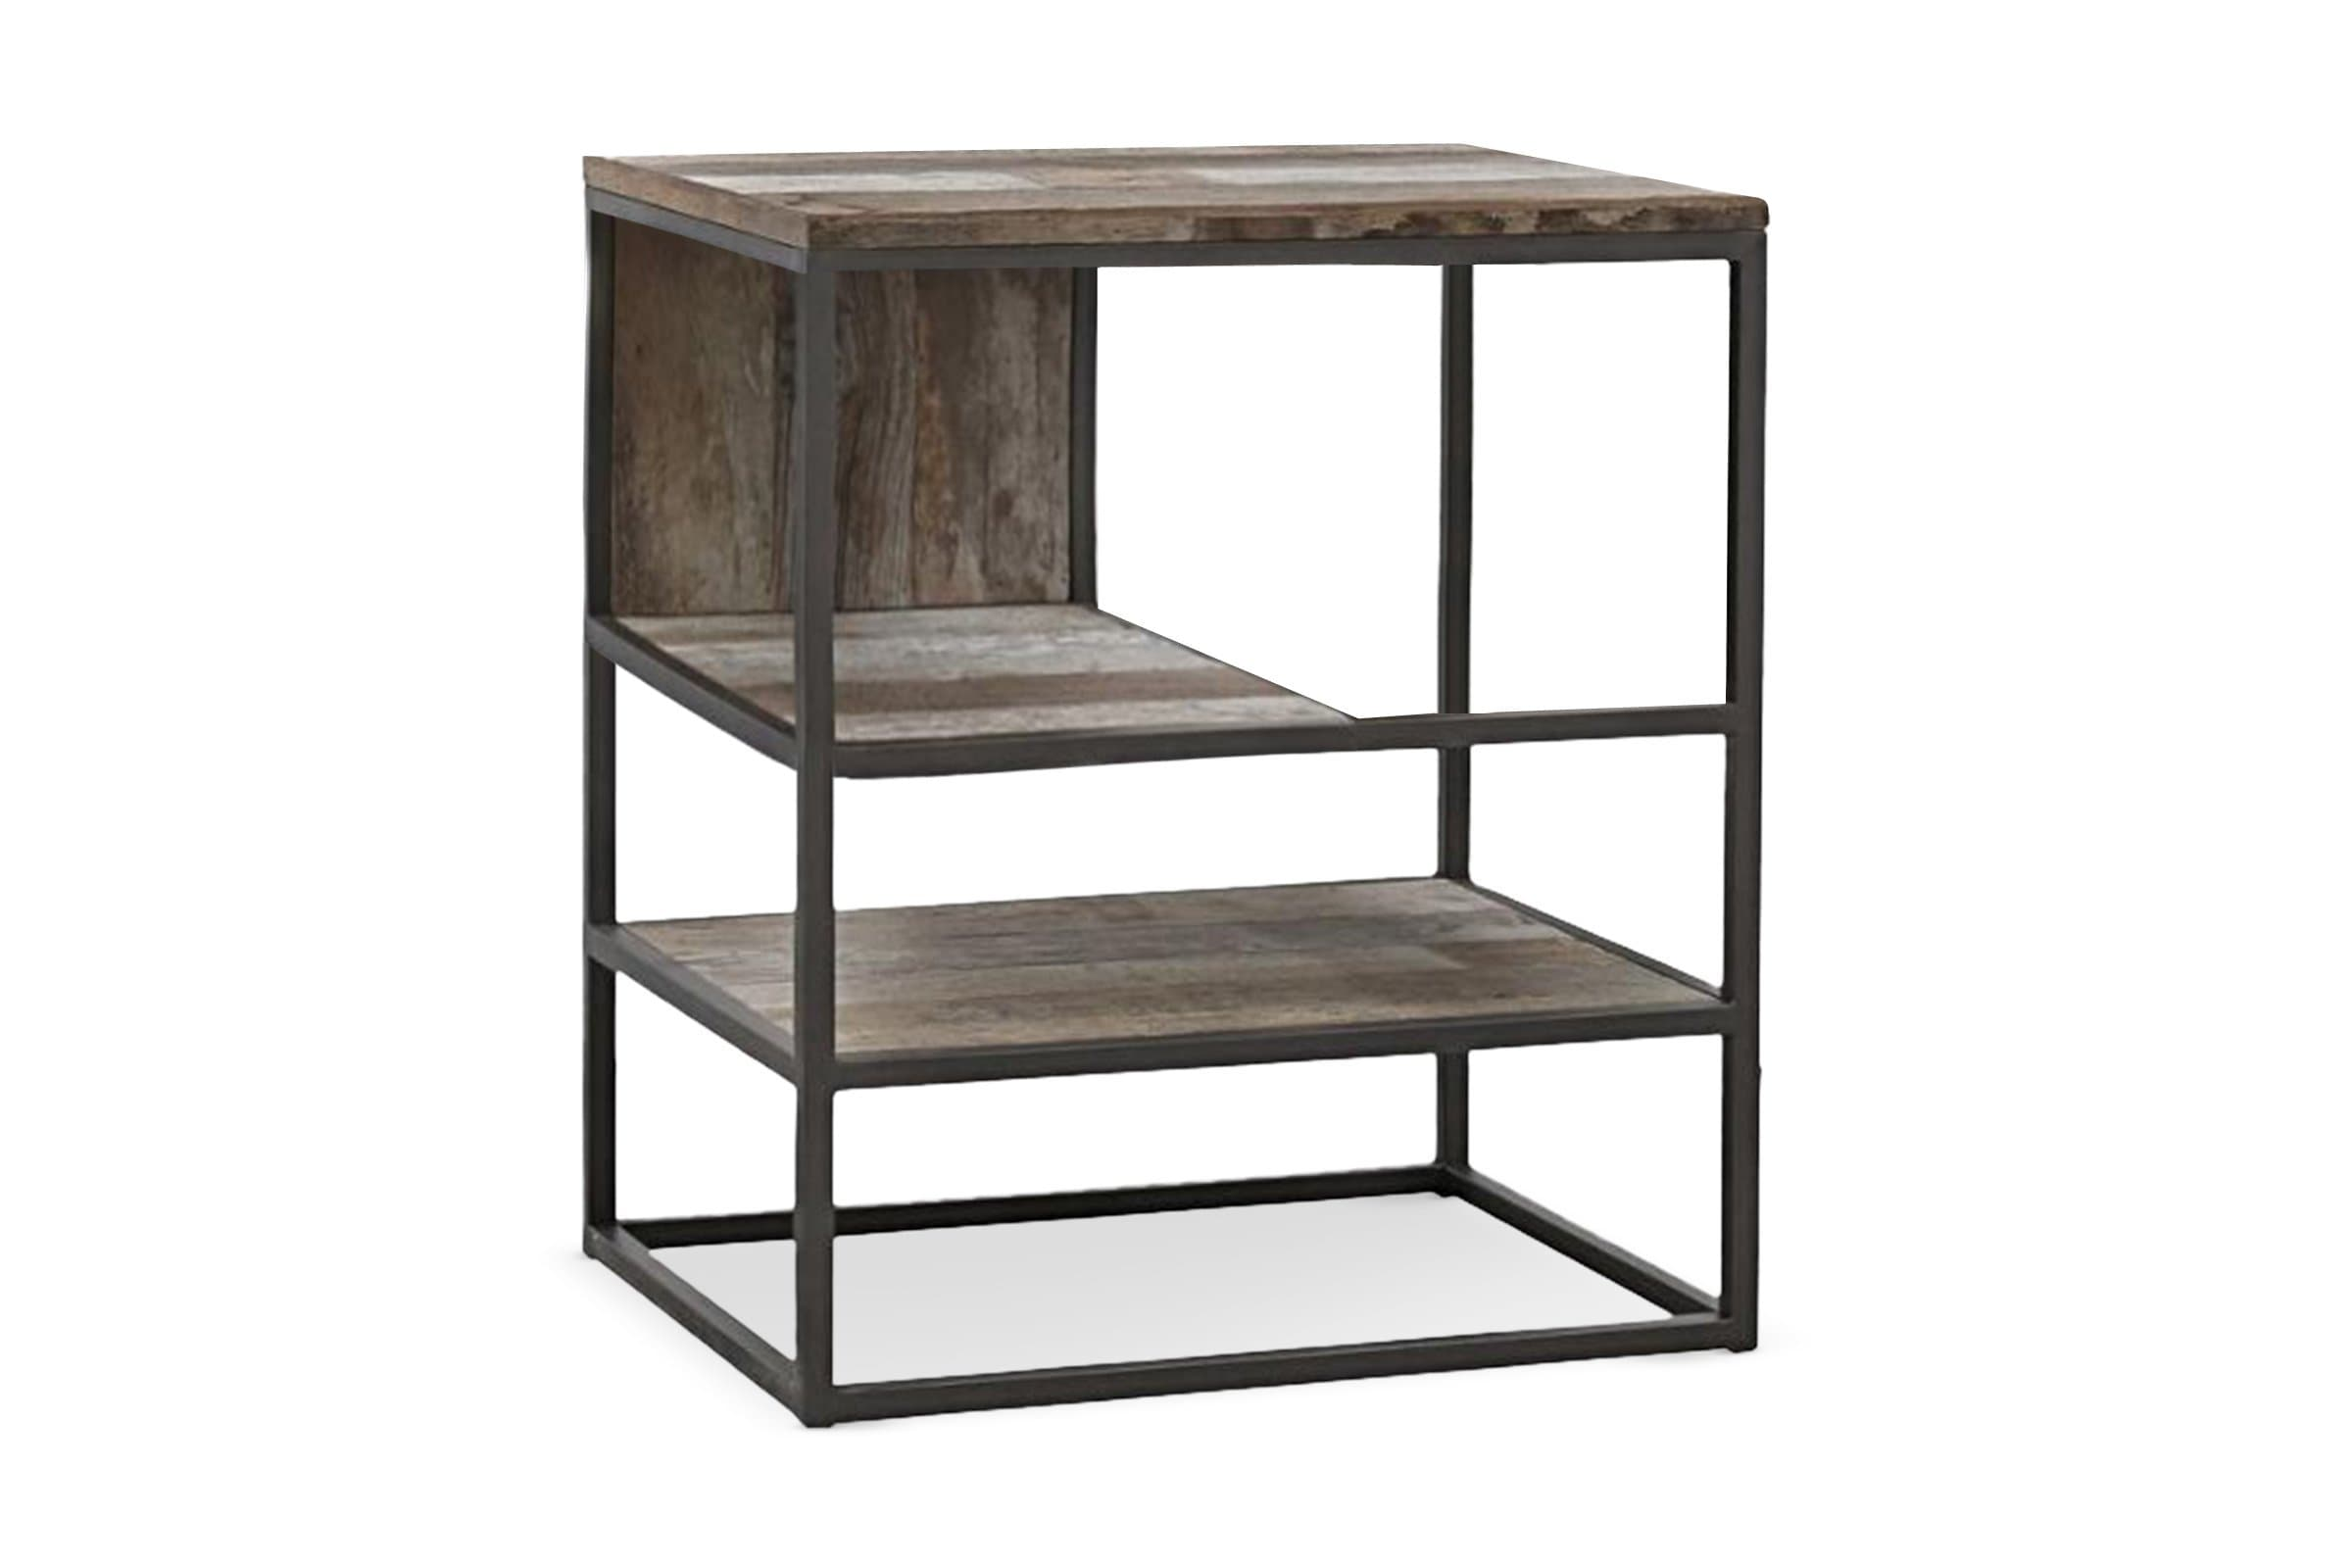 Sawyer Side Table - Modern Side Table - Sold by Apt2B